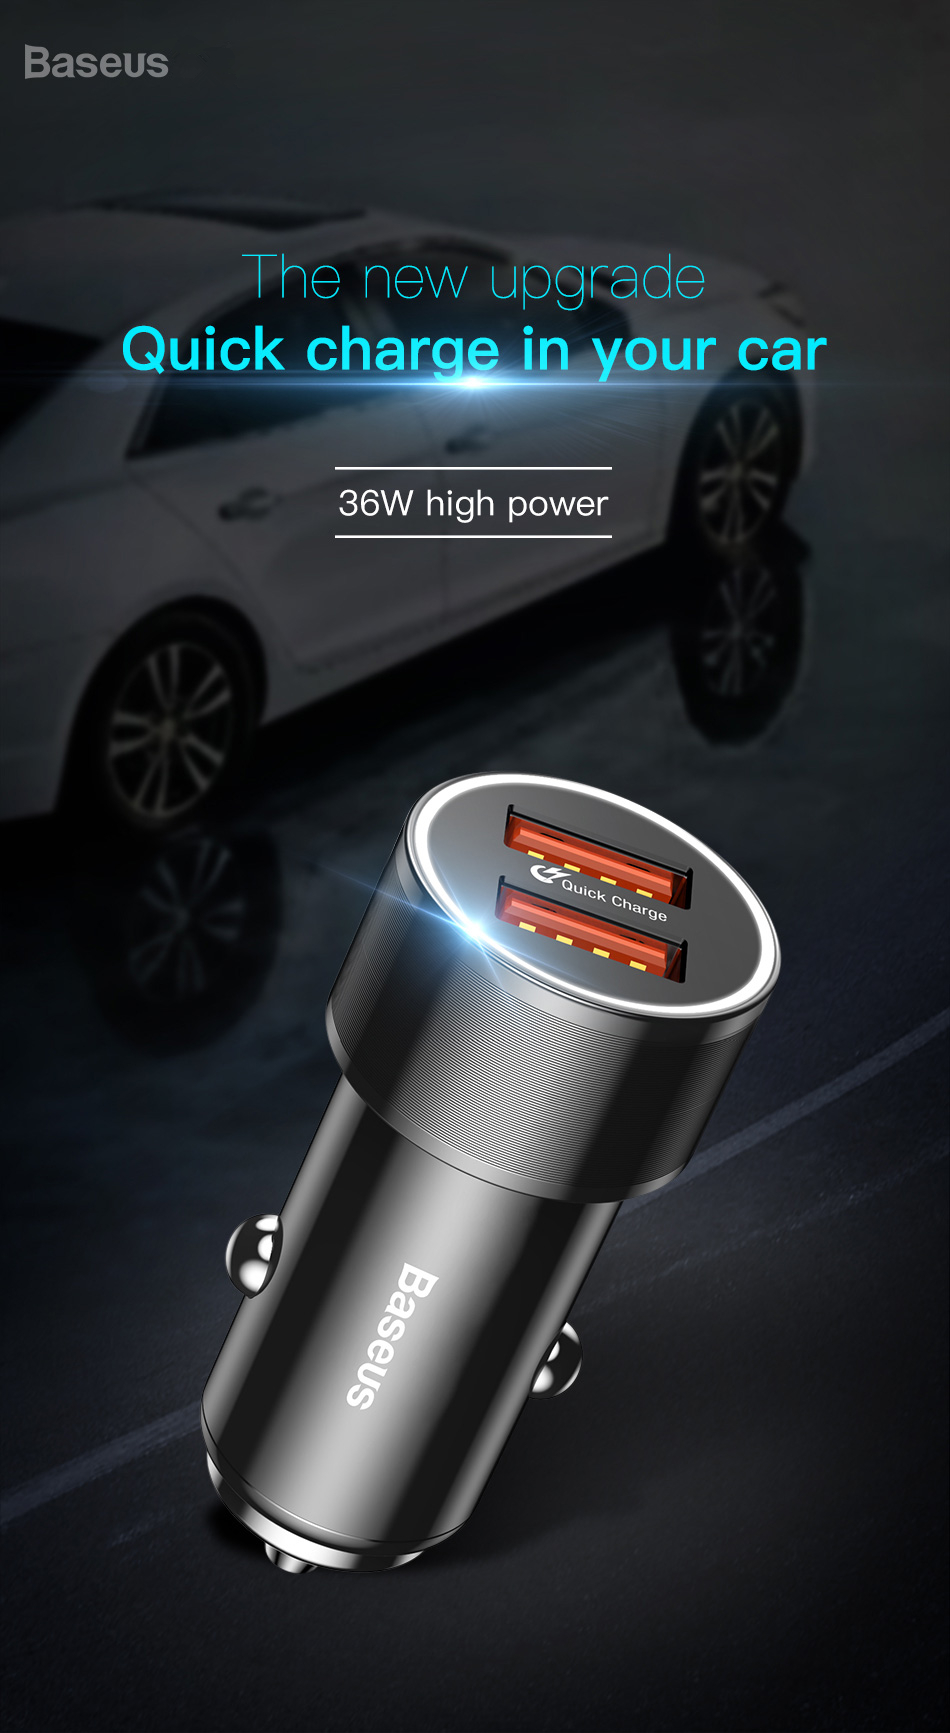 Baseus 36W QC3.0 Dual USB Ports Fast Car Charger For iPhone X 8Plus Oneplus 5T Xiaomi Mix 2S S9+